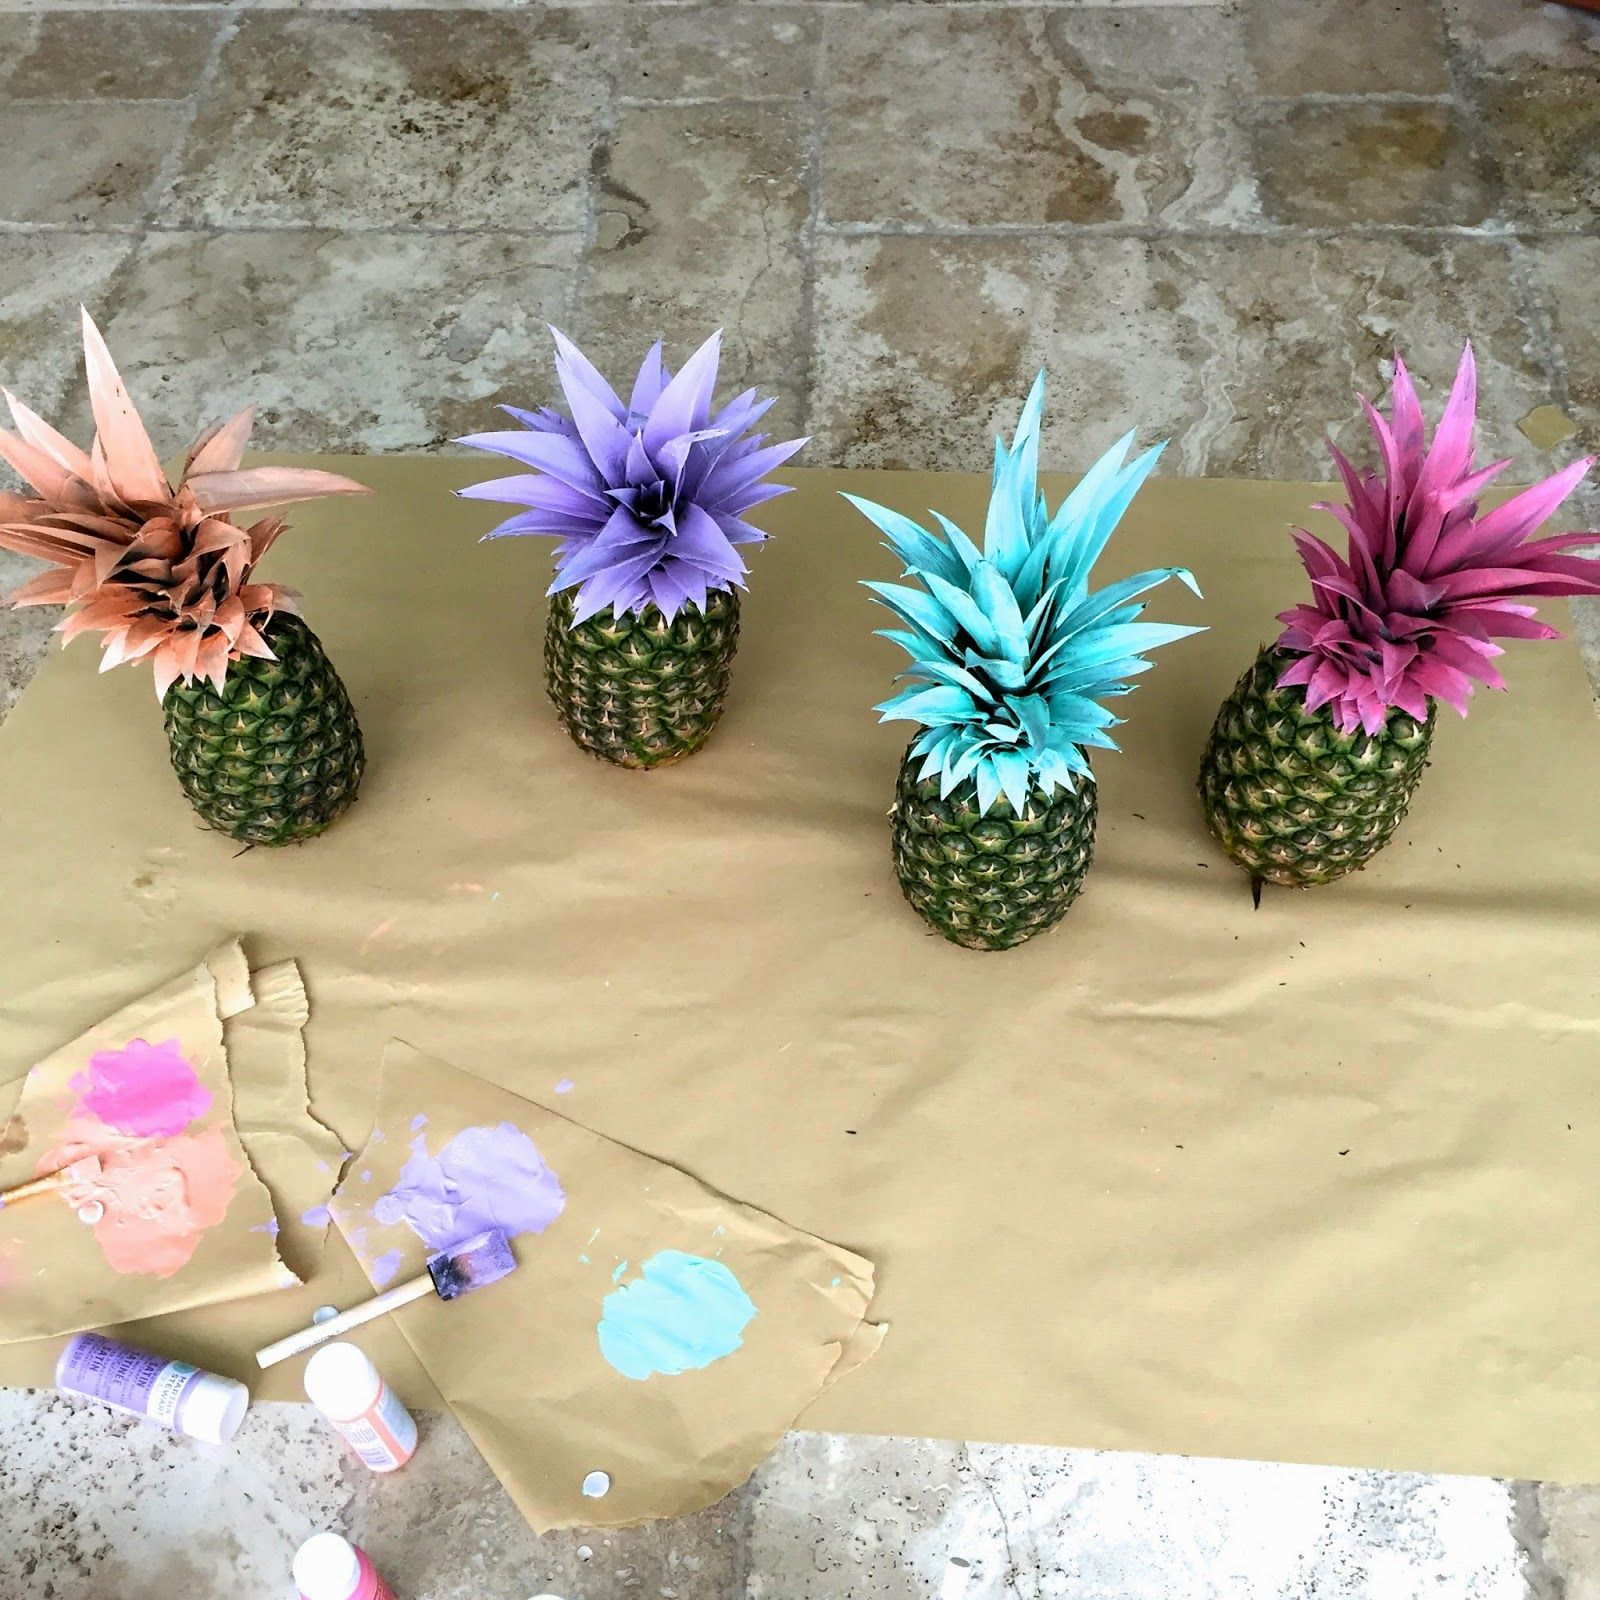 sweet decor savory beach friendly themed cones succulent invitations decorations party buttons ideas sort shuffle home donut for supplies adults favors